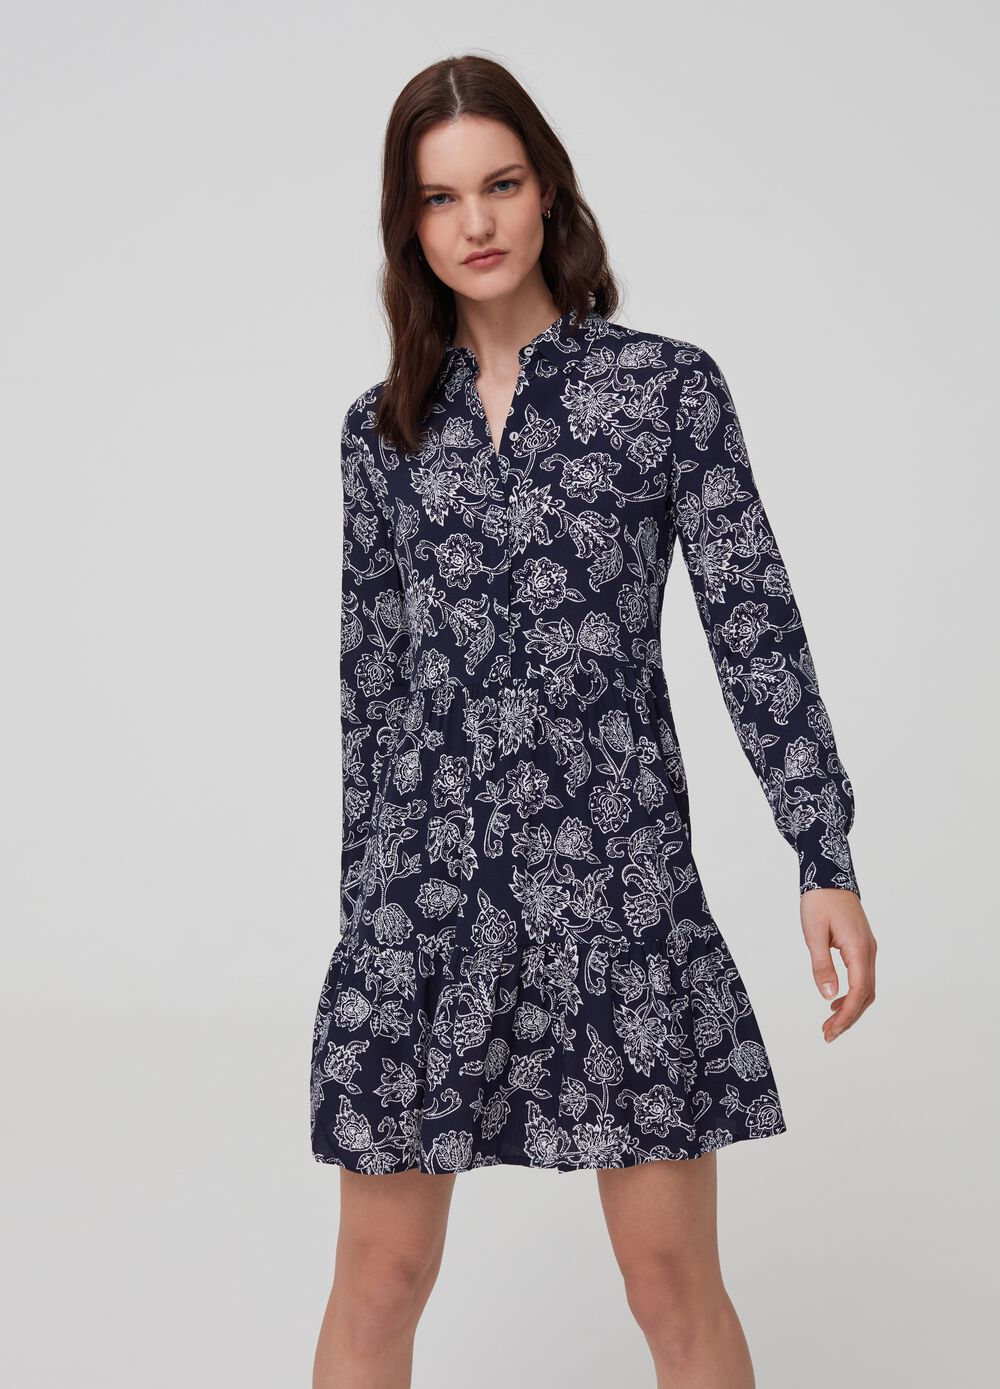 Short patterned dress in 100% viscose